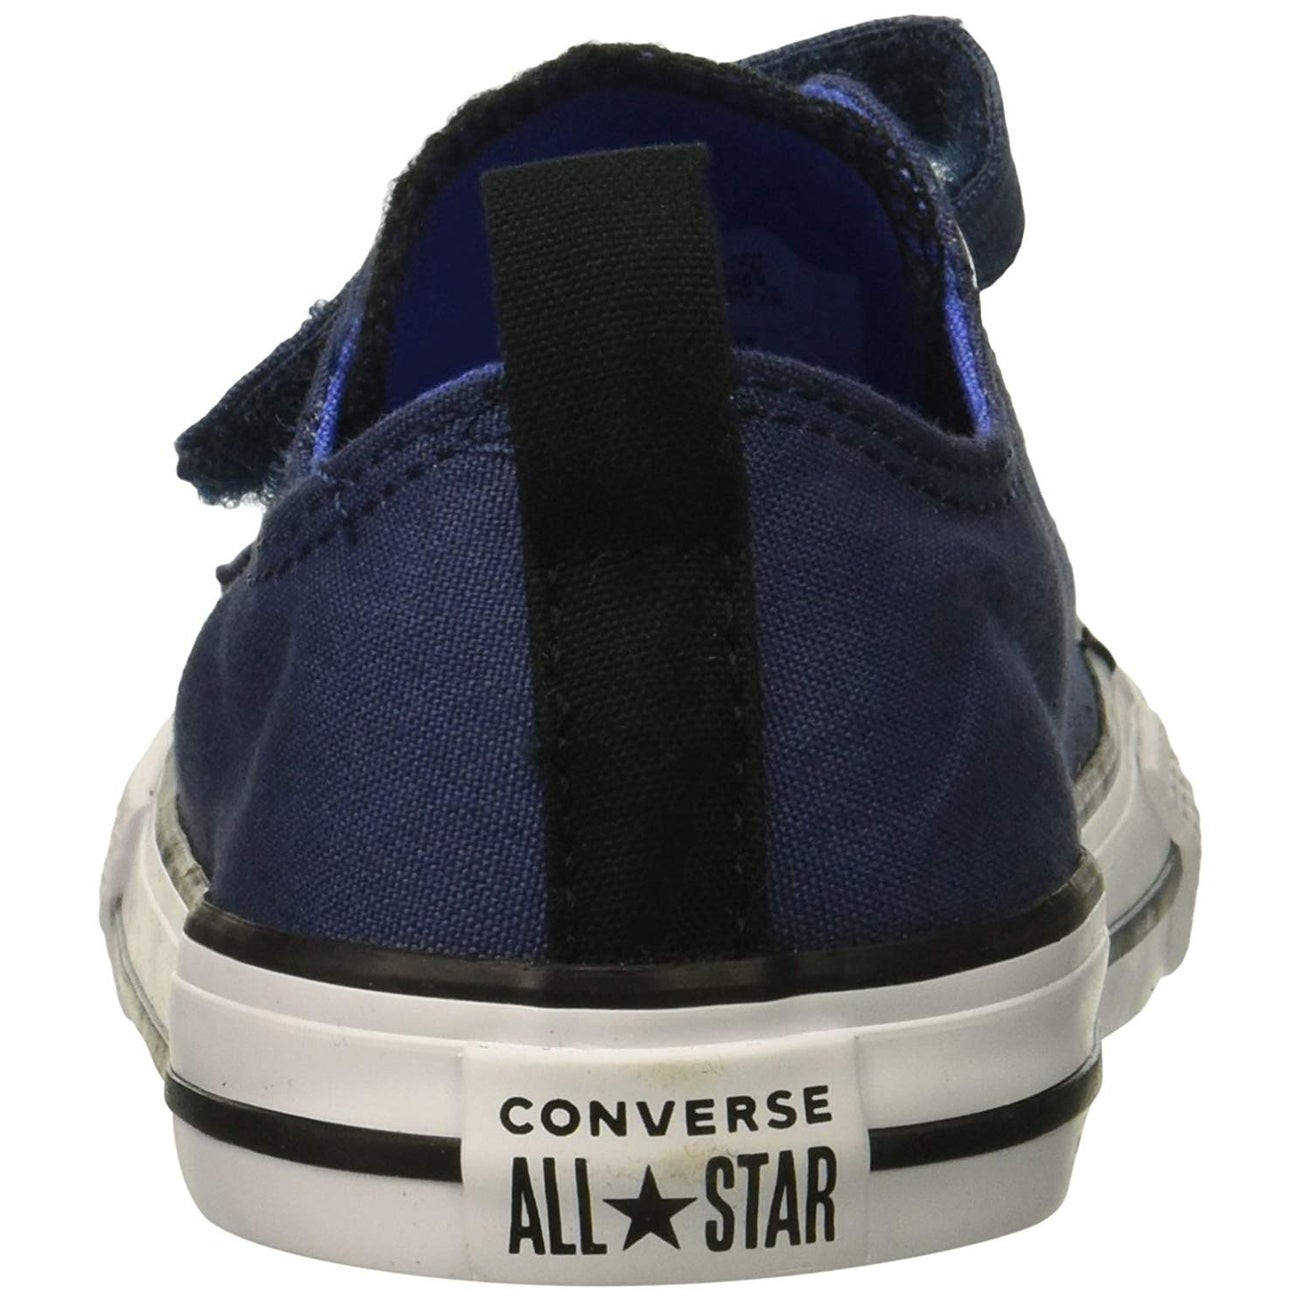 best sneakers f5671 0ec1a Shop Converse Kids  Chuck Taylor All Star 2v Sneaker - 9 m us toddler -  Free Shipping On Orders Over  45 - Overstock.com - 25705019